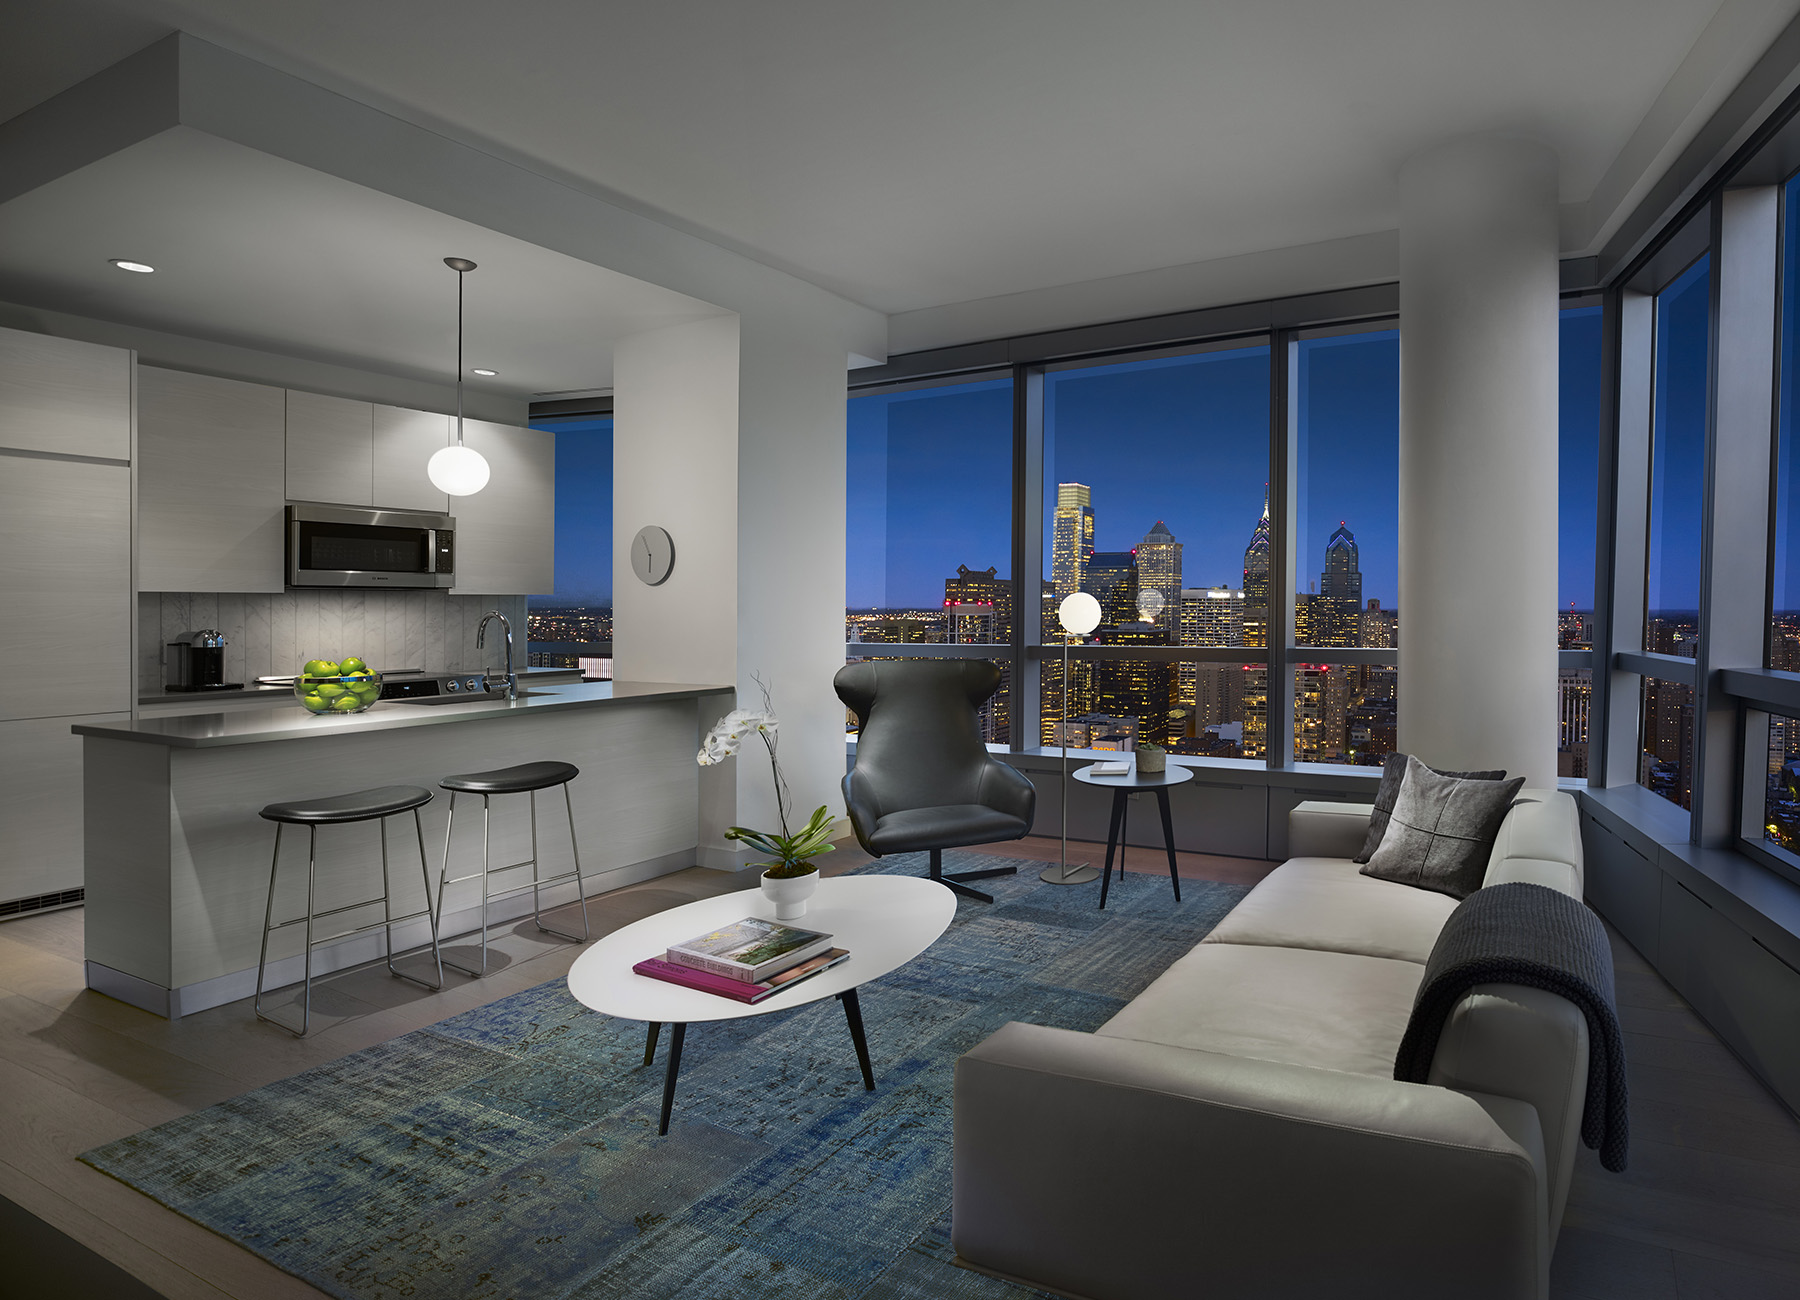 Living room with open kitchen and the Philadelphia skyline at night visible through the full length windows